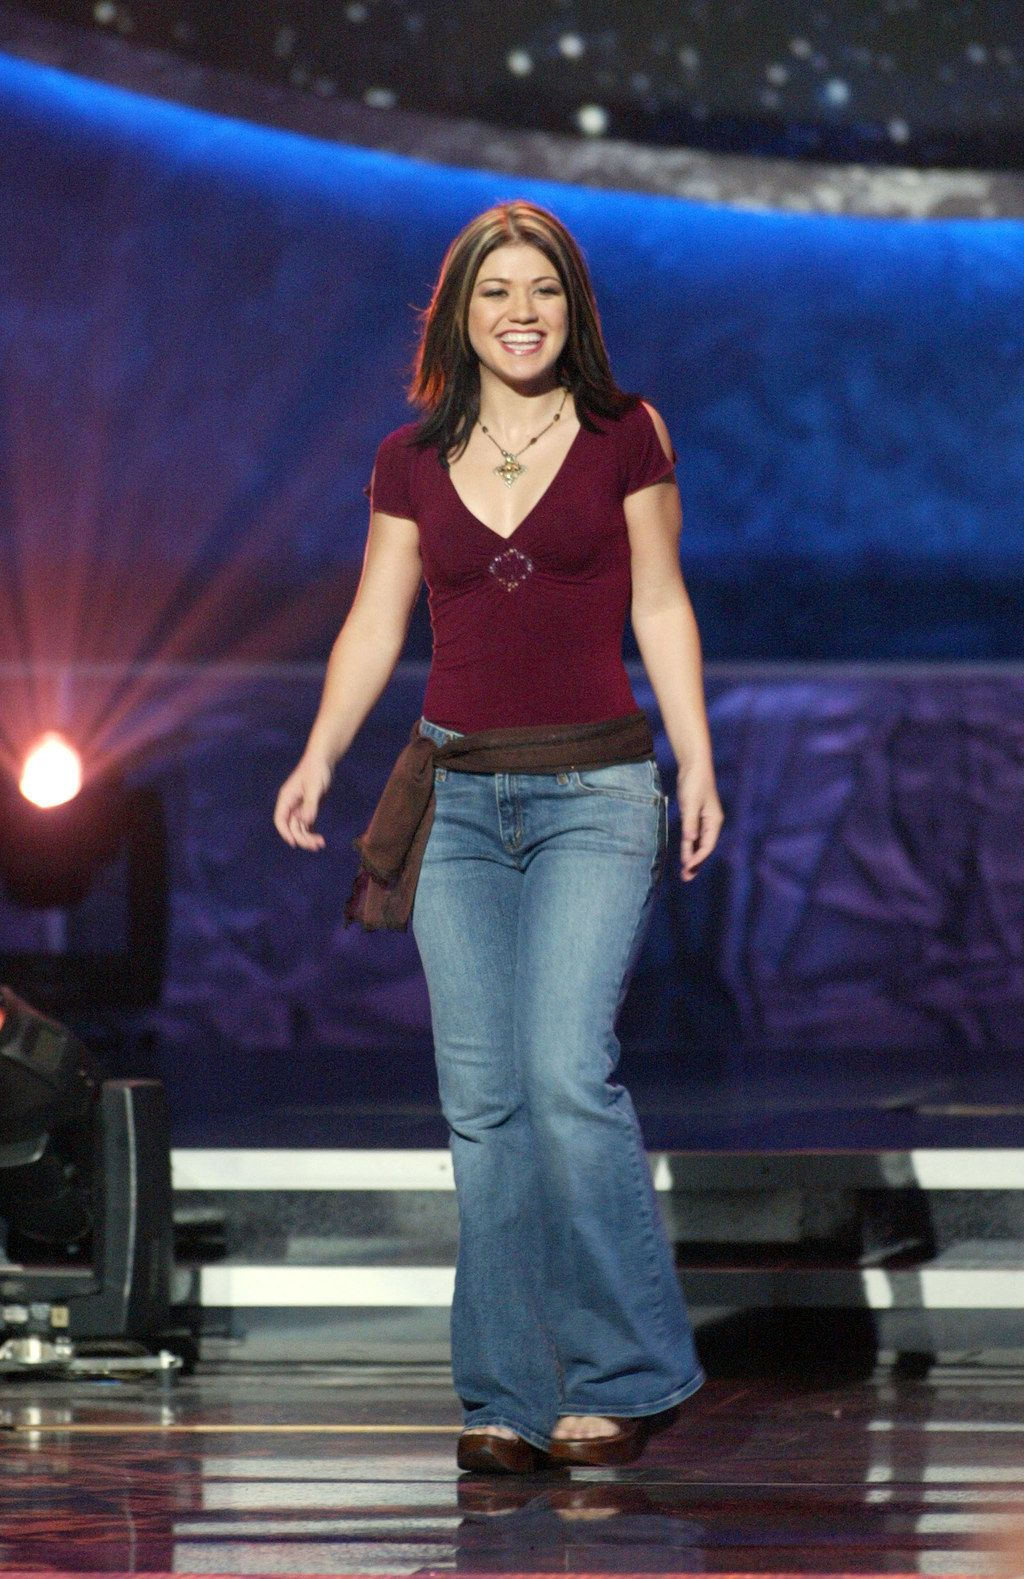 Soft Grunge Summer Outfits: Kelly Clarkson's Stylized Cross Necklace, Platform Heels